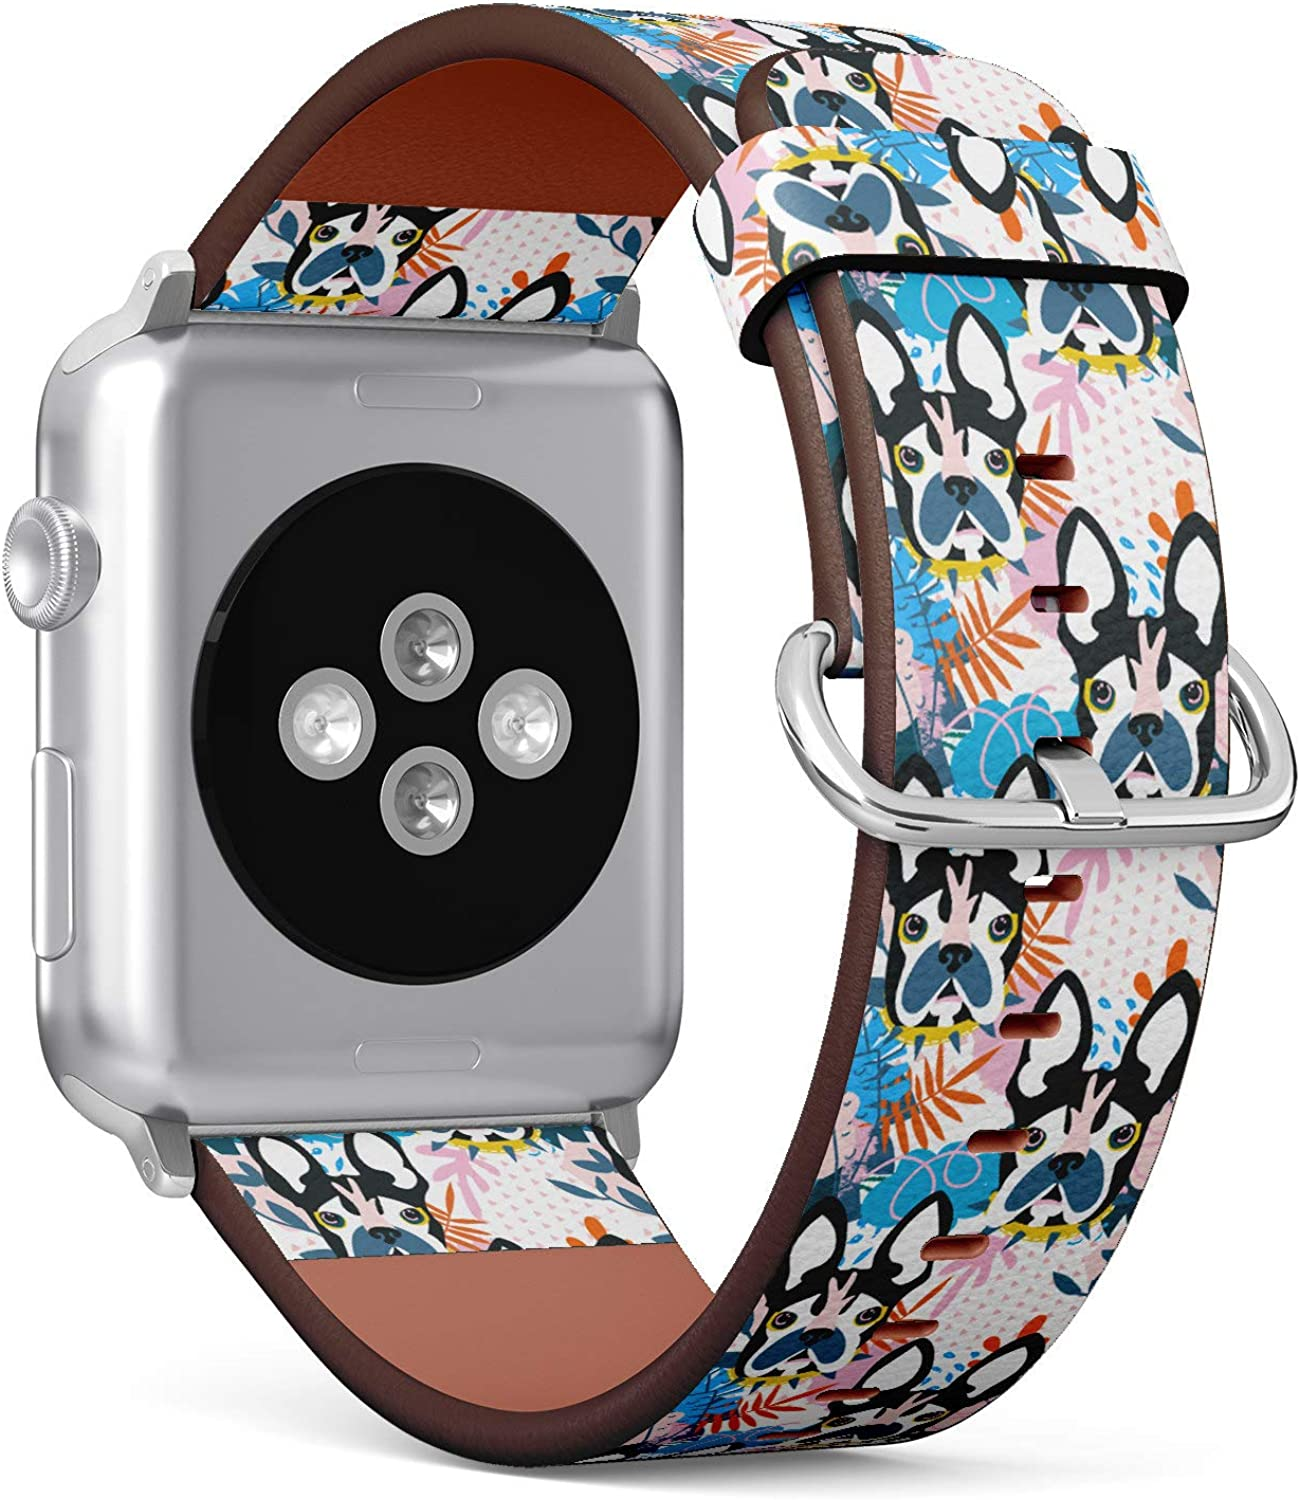 (Boston Terrier French Bulldog) Patterned Leather Wristband Strap for Apple Watch Series 4/3/2/1 gen,Replacement for iWatch 38mm / 40mm Bands